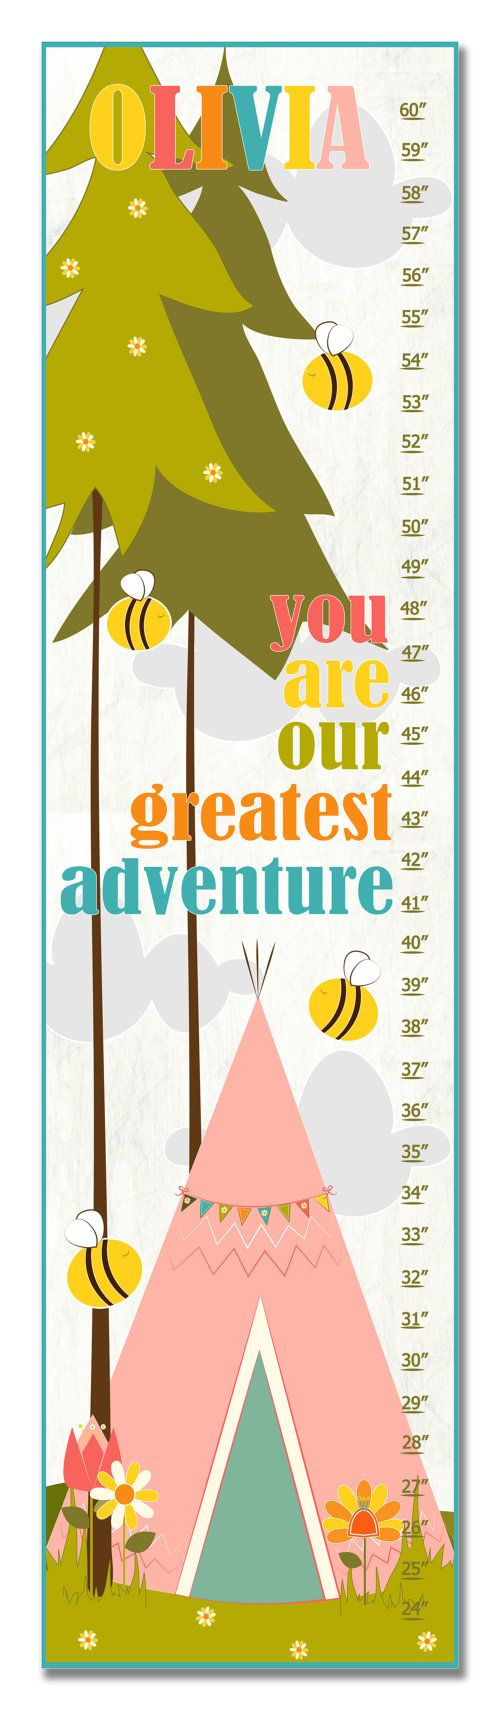 23 best growth charts images on pinterest babies rooms child greatest adventure personalized growth chart capture all of those special milestones in style with our personalized growth charts nvjuhfo Choice Image